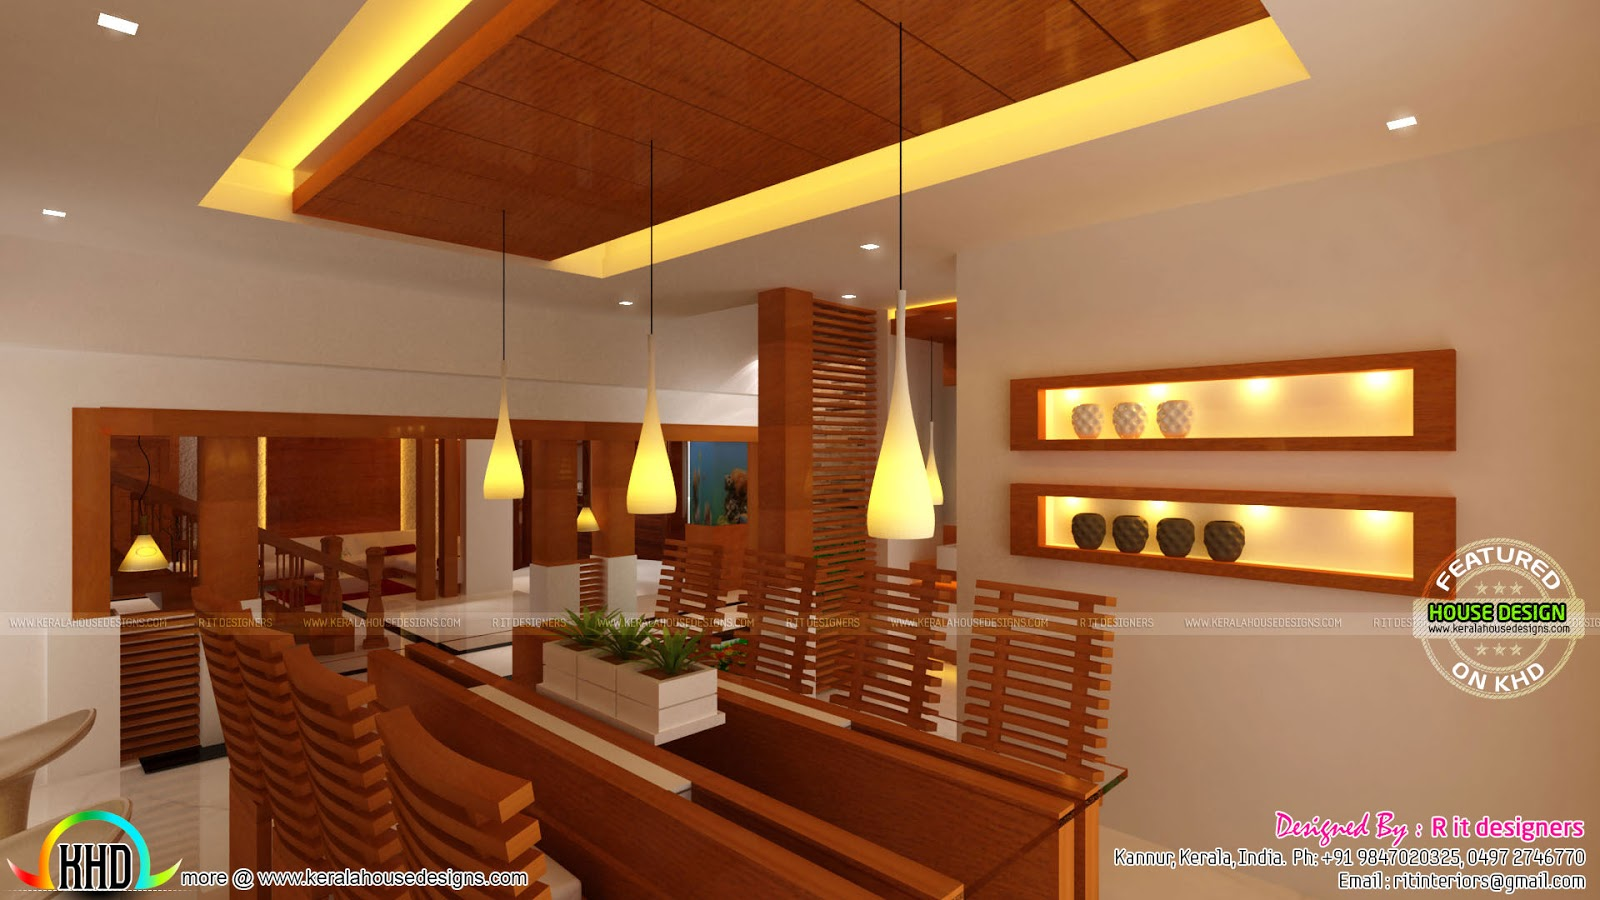 Wooden finish interior designs kerala home design and for Interior designs for homes pictures